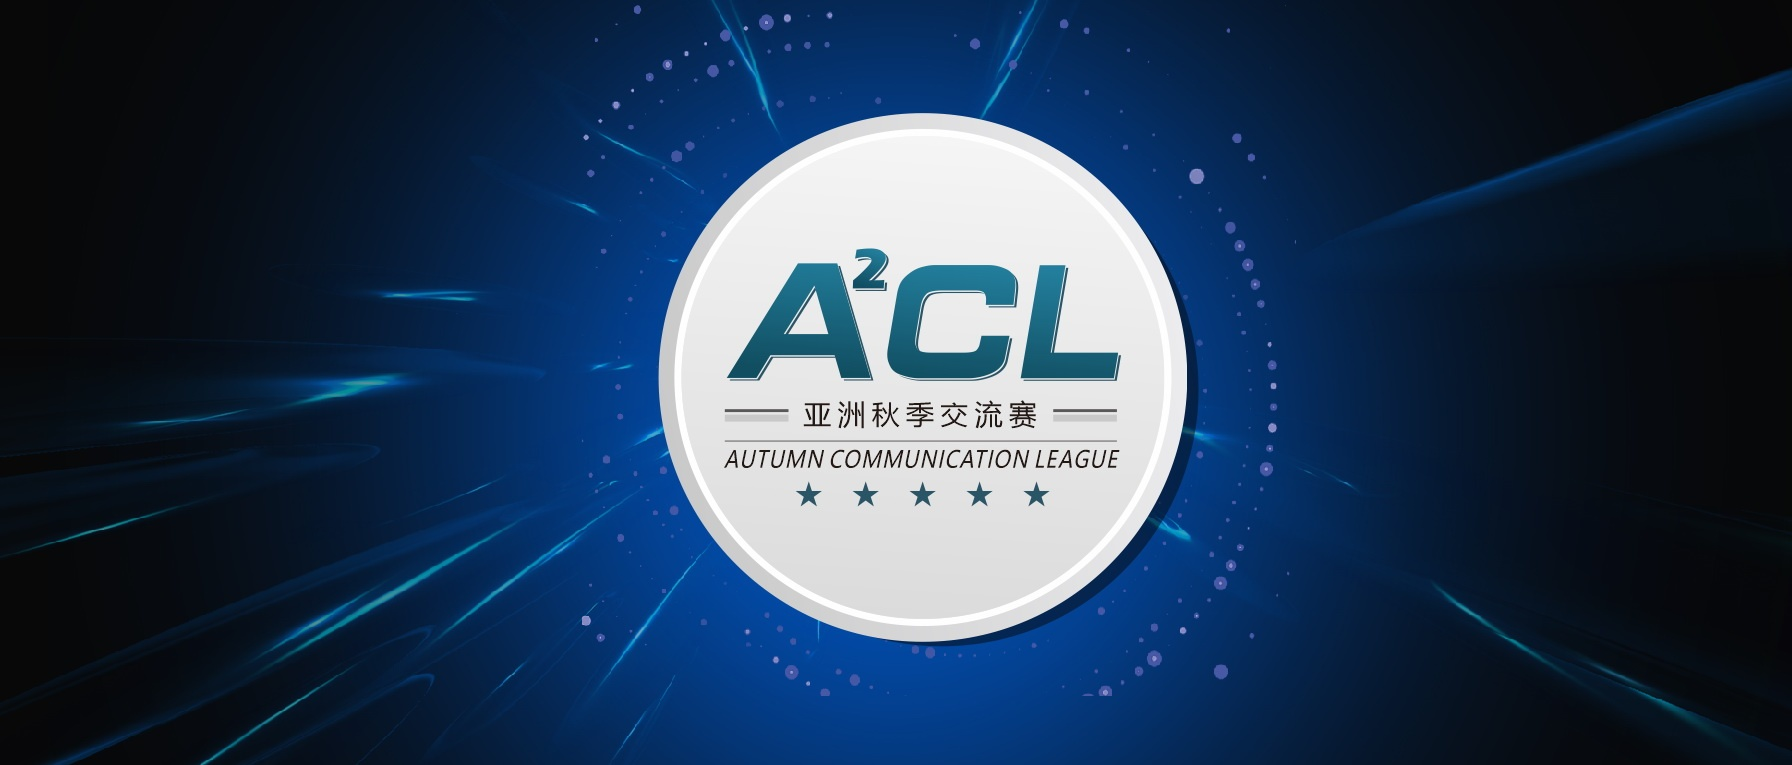 Asia Communication League Autumn 2019 Tournament